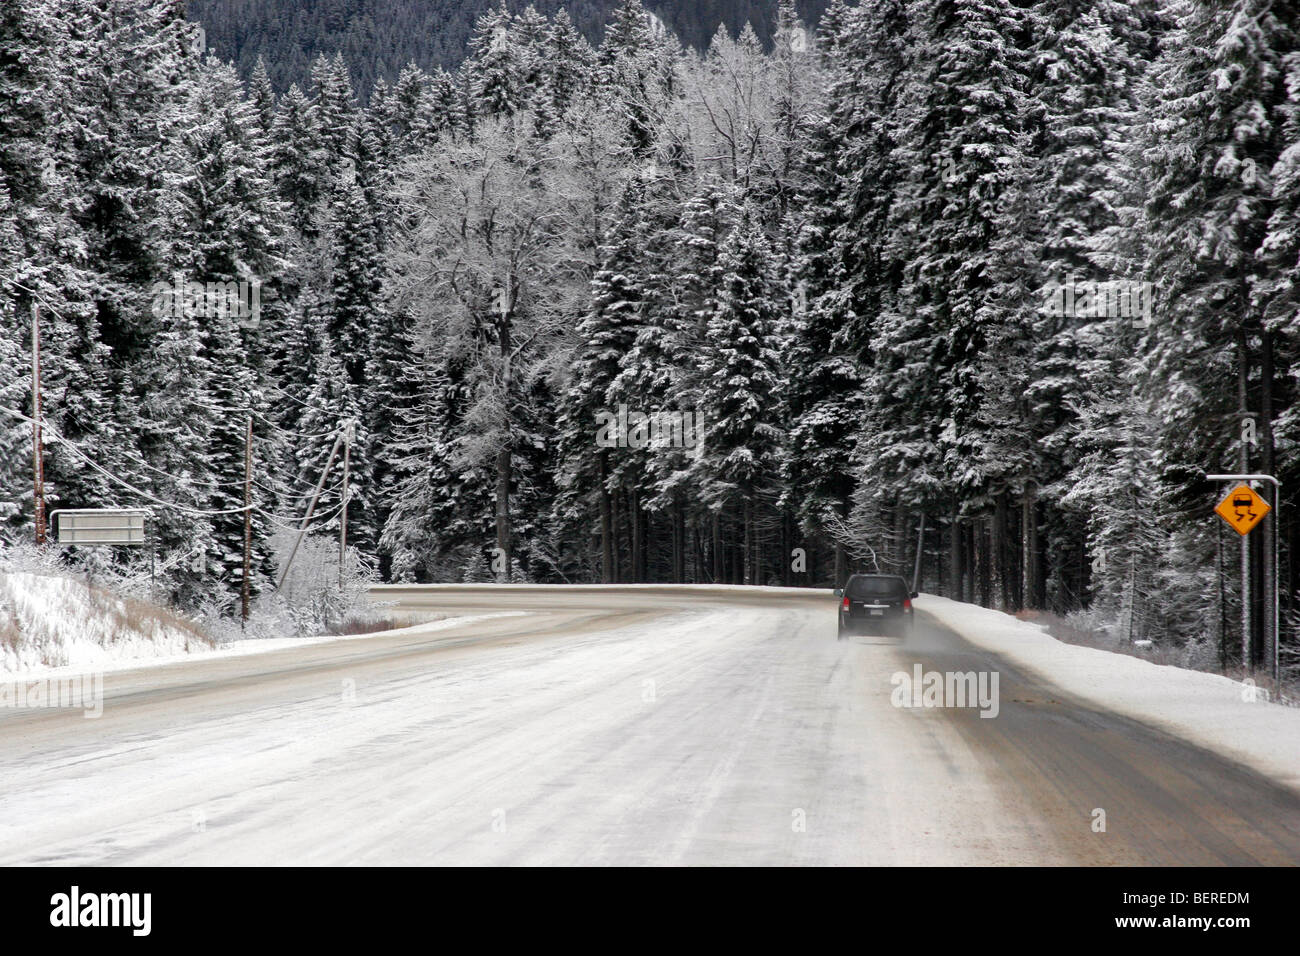 Slippery road during cold winter day in Vancouver, British Columbia Canada - Stock Image